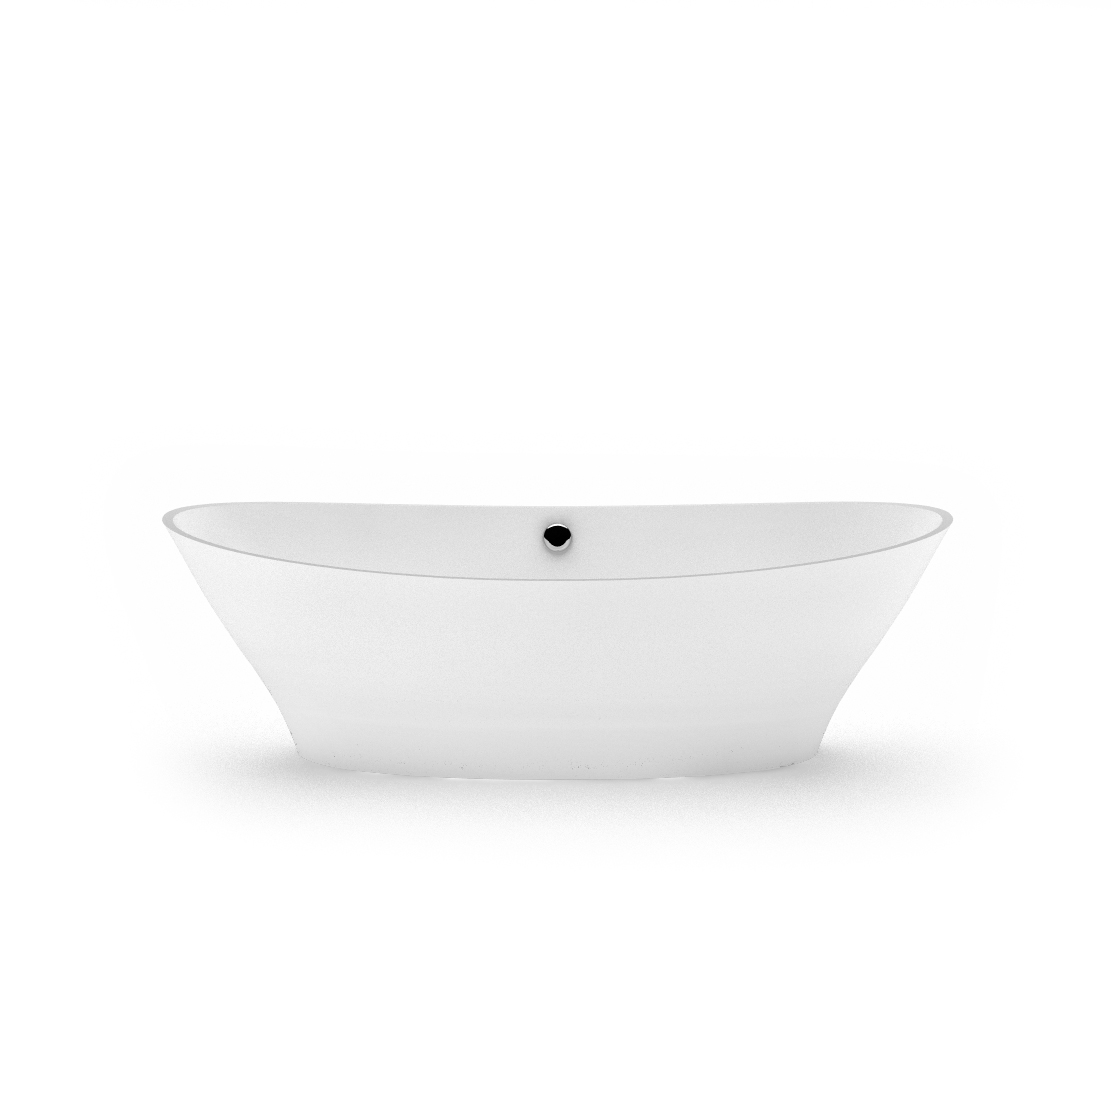 Freestanding bath Demetra - cast stone handmade bathtub by AURA fr